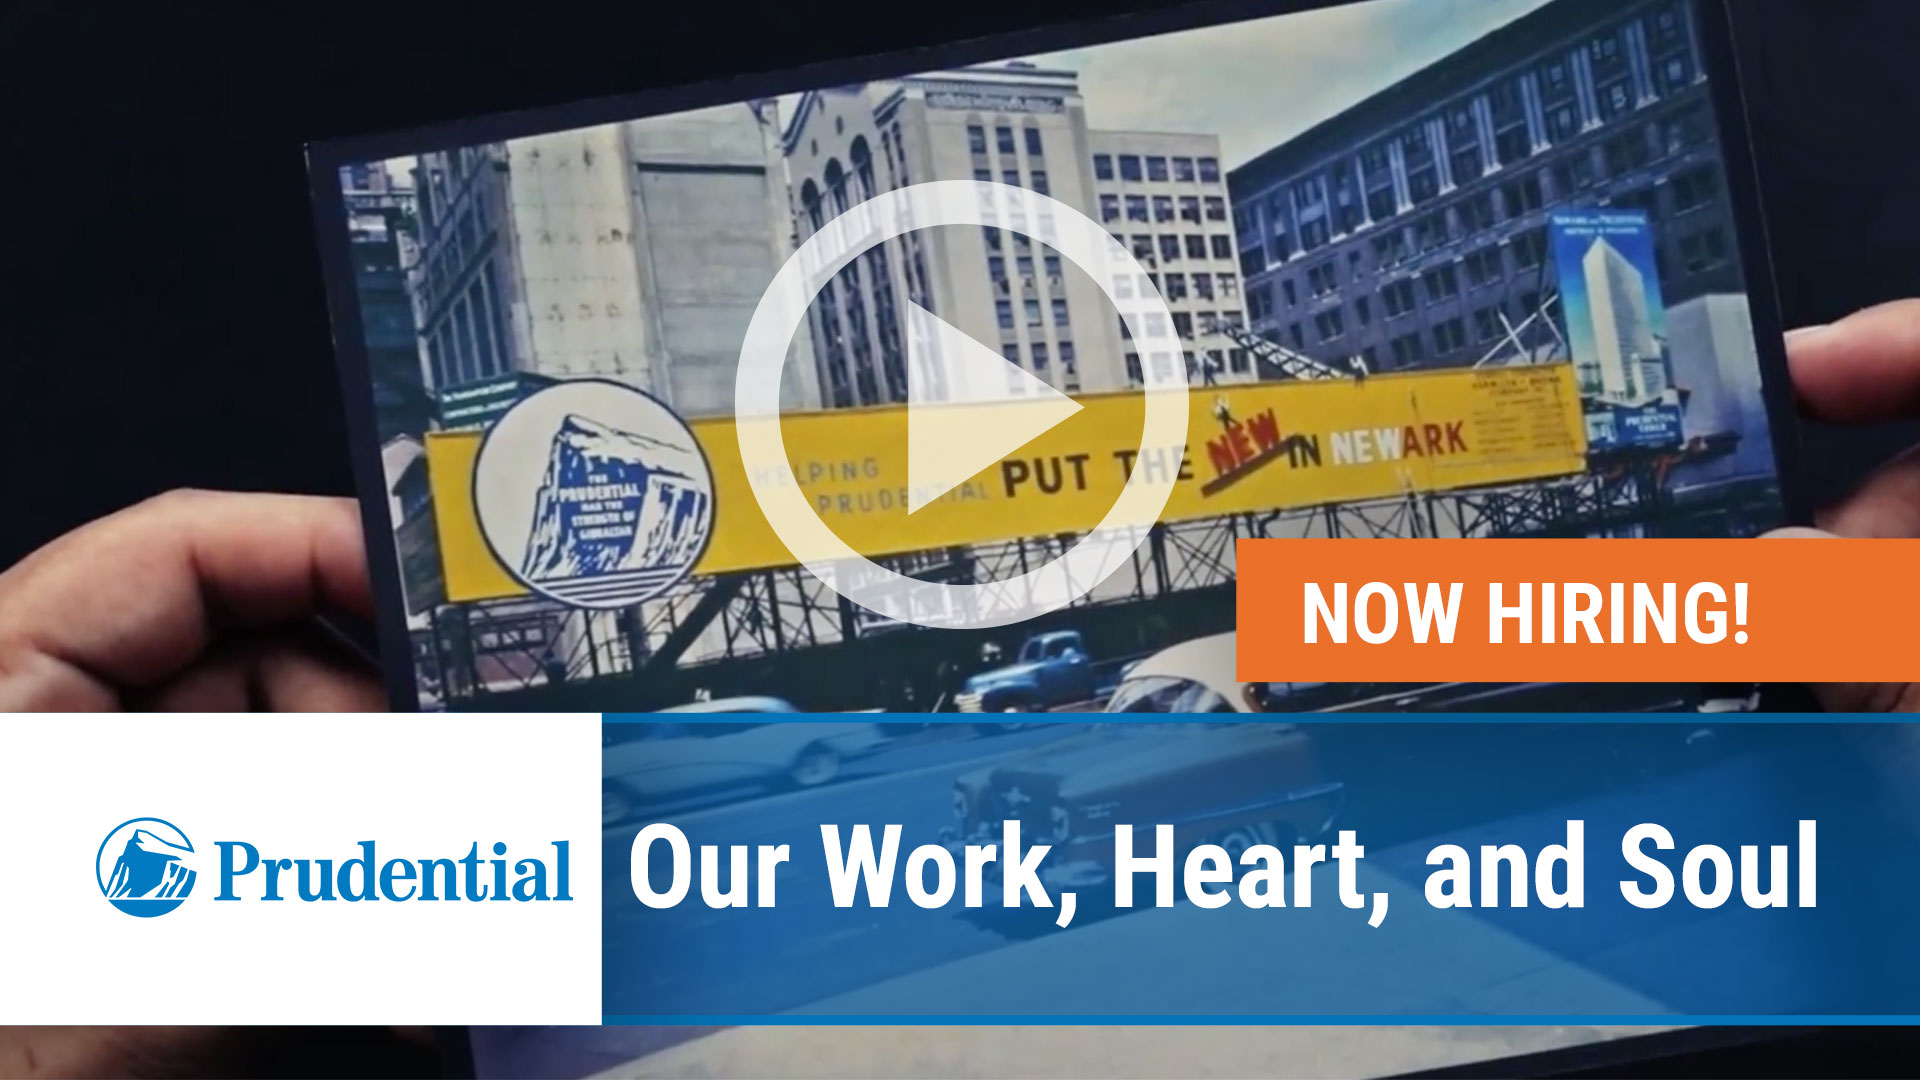 Watch our careers video for available job opening Our Work, Heart, and Soul in Newark NJ, Dresher PA, Hartfo